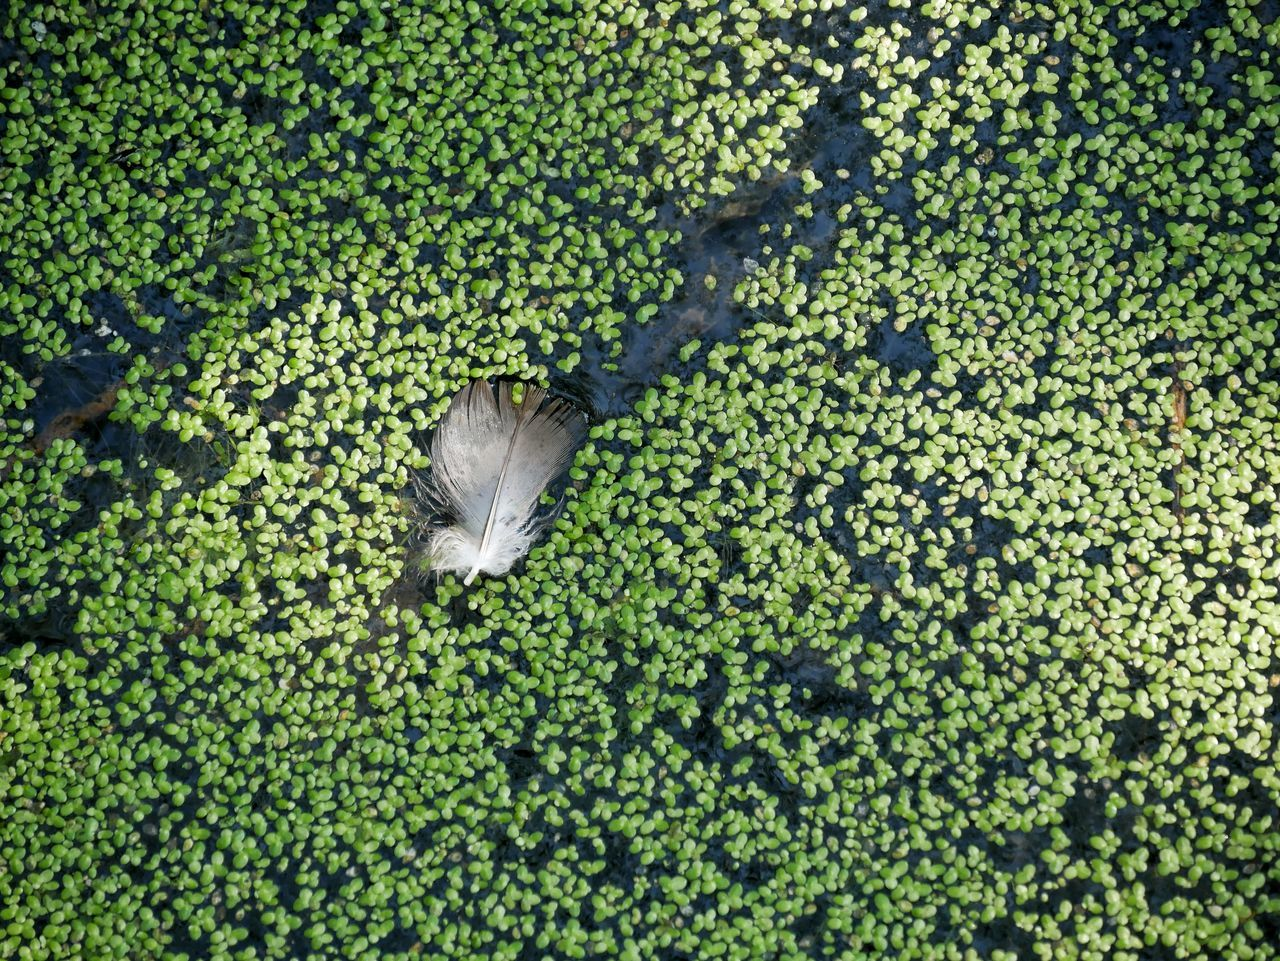 A feather in a pond with lots of algea. Abstract Beautiful Nature Pond Life Pond Algae Feather  Fallen Feather Green Color Green Nature Zen Artistic Expression Simplicity Simple Beauty Minimalism Panasonic Lumix Dmc-gx85 Louisville Colorado Pivotal Ideas A Birds Eye View